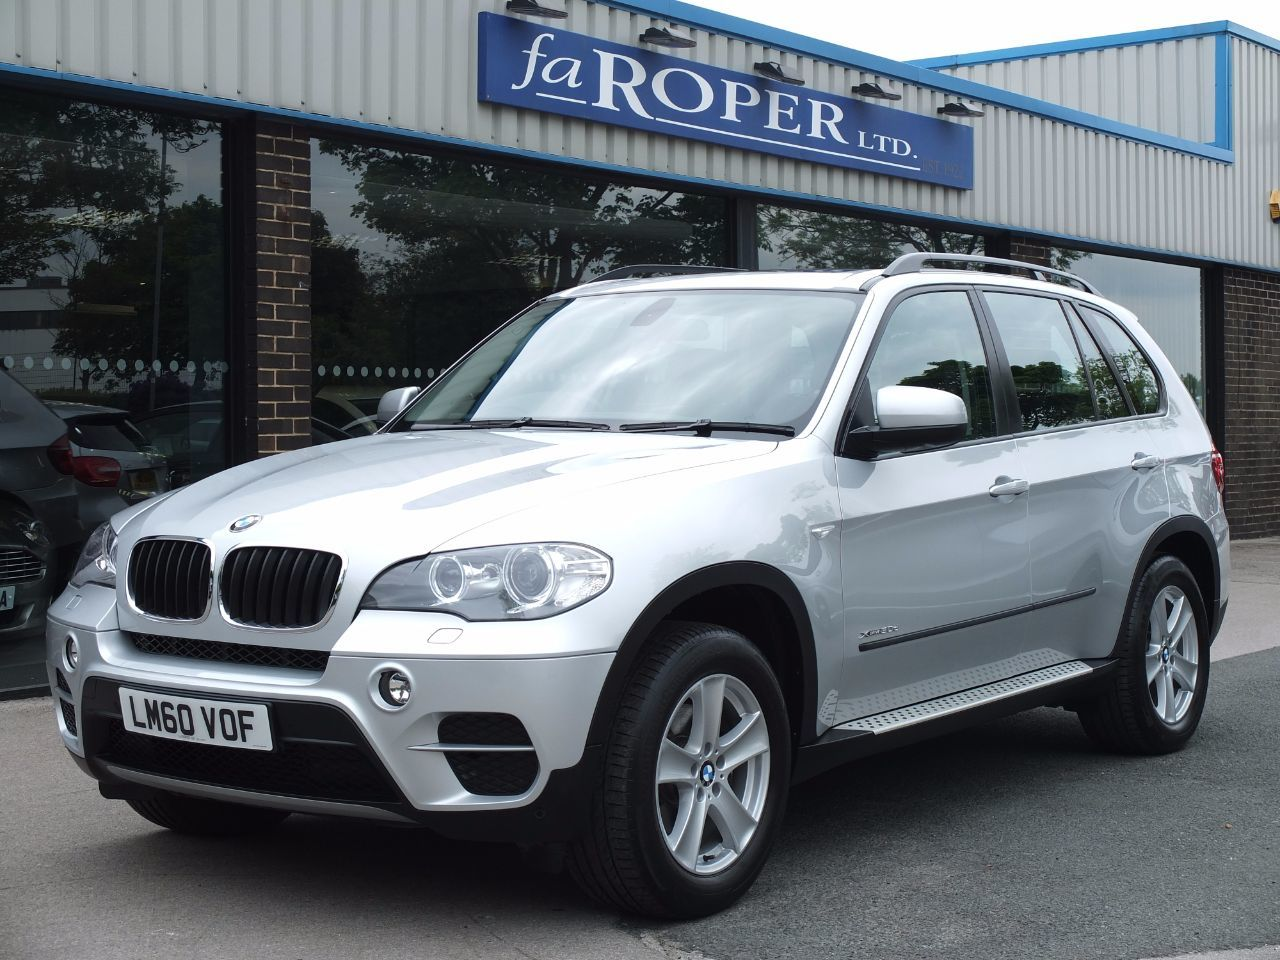 BMW X5 3.0 xDrive30d SE Auto Facelift, Pan Roof, Media Estate Diesel Titanium Silver Metallic